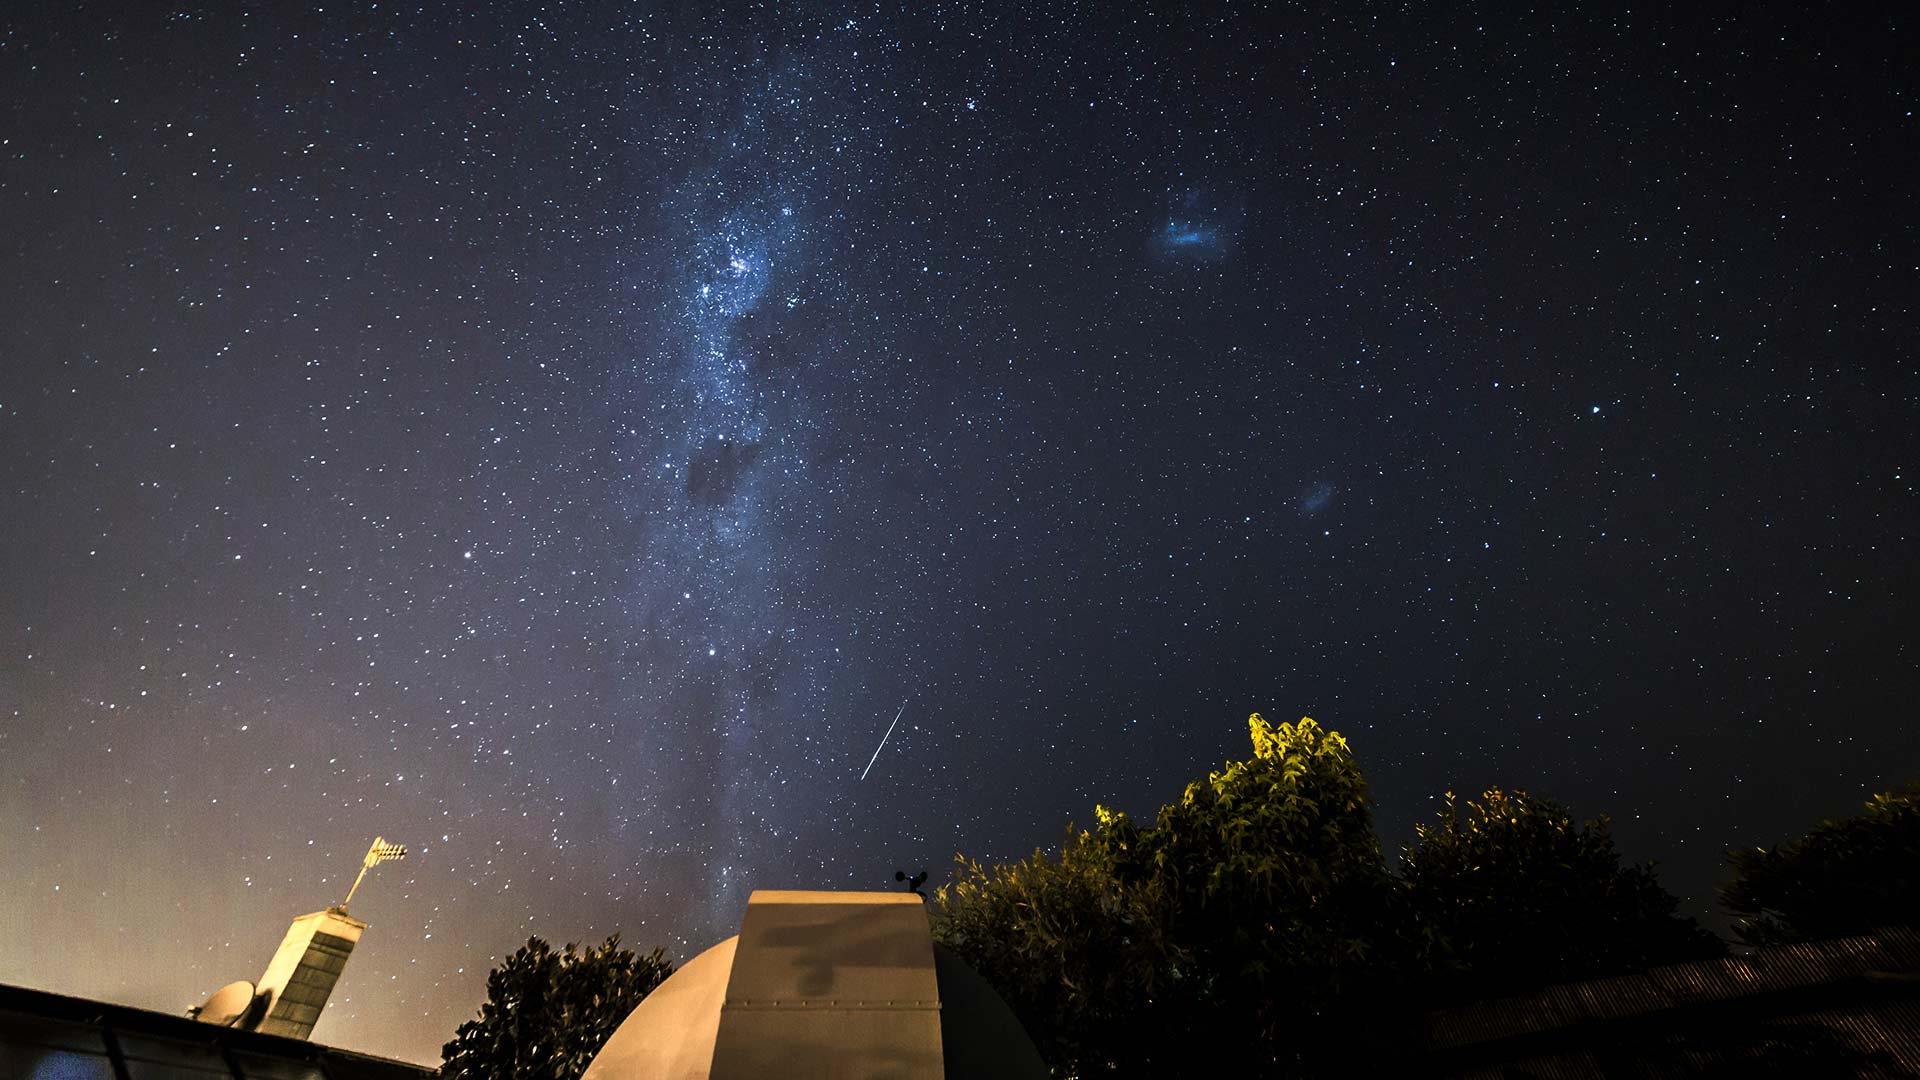 A large telescope pointed at the night sky and the milky way with a shooting star.